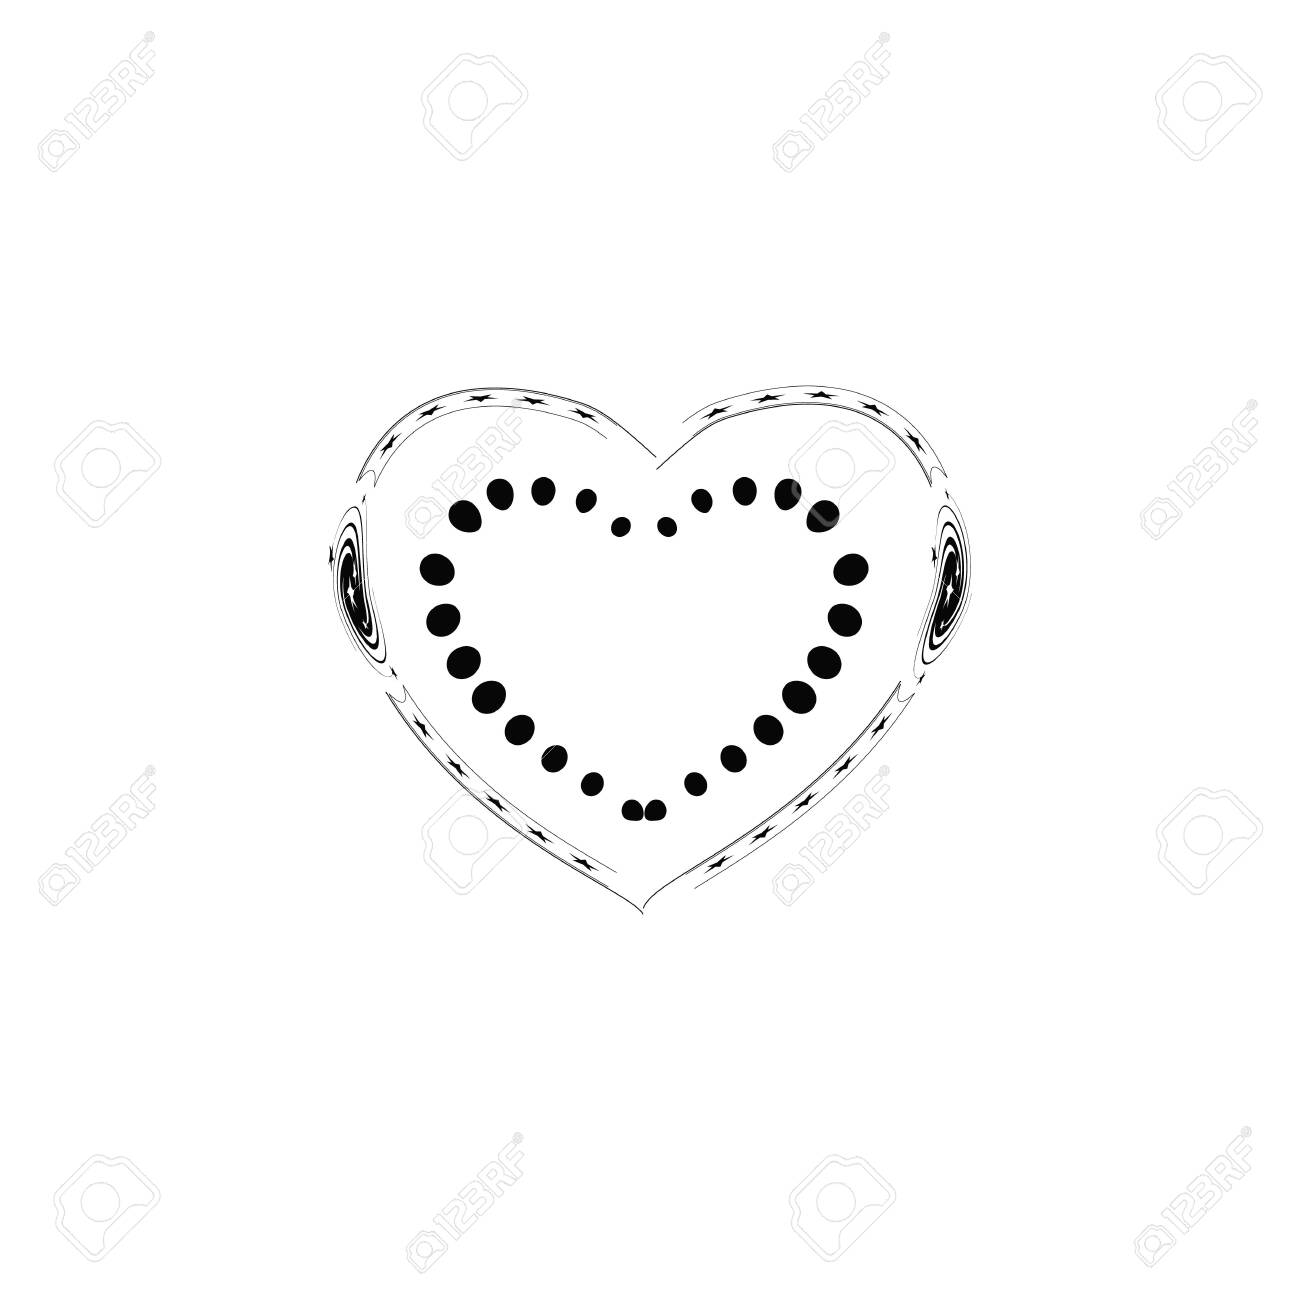 Decorative black heart on white background. Romantic symbol love, passion and wedding. Template for t shirt, apparel, card, poster. Design element of valentine day. Vector illustration - 143708256